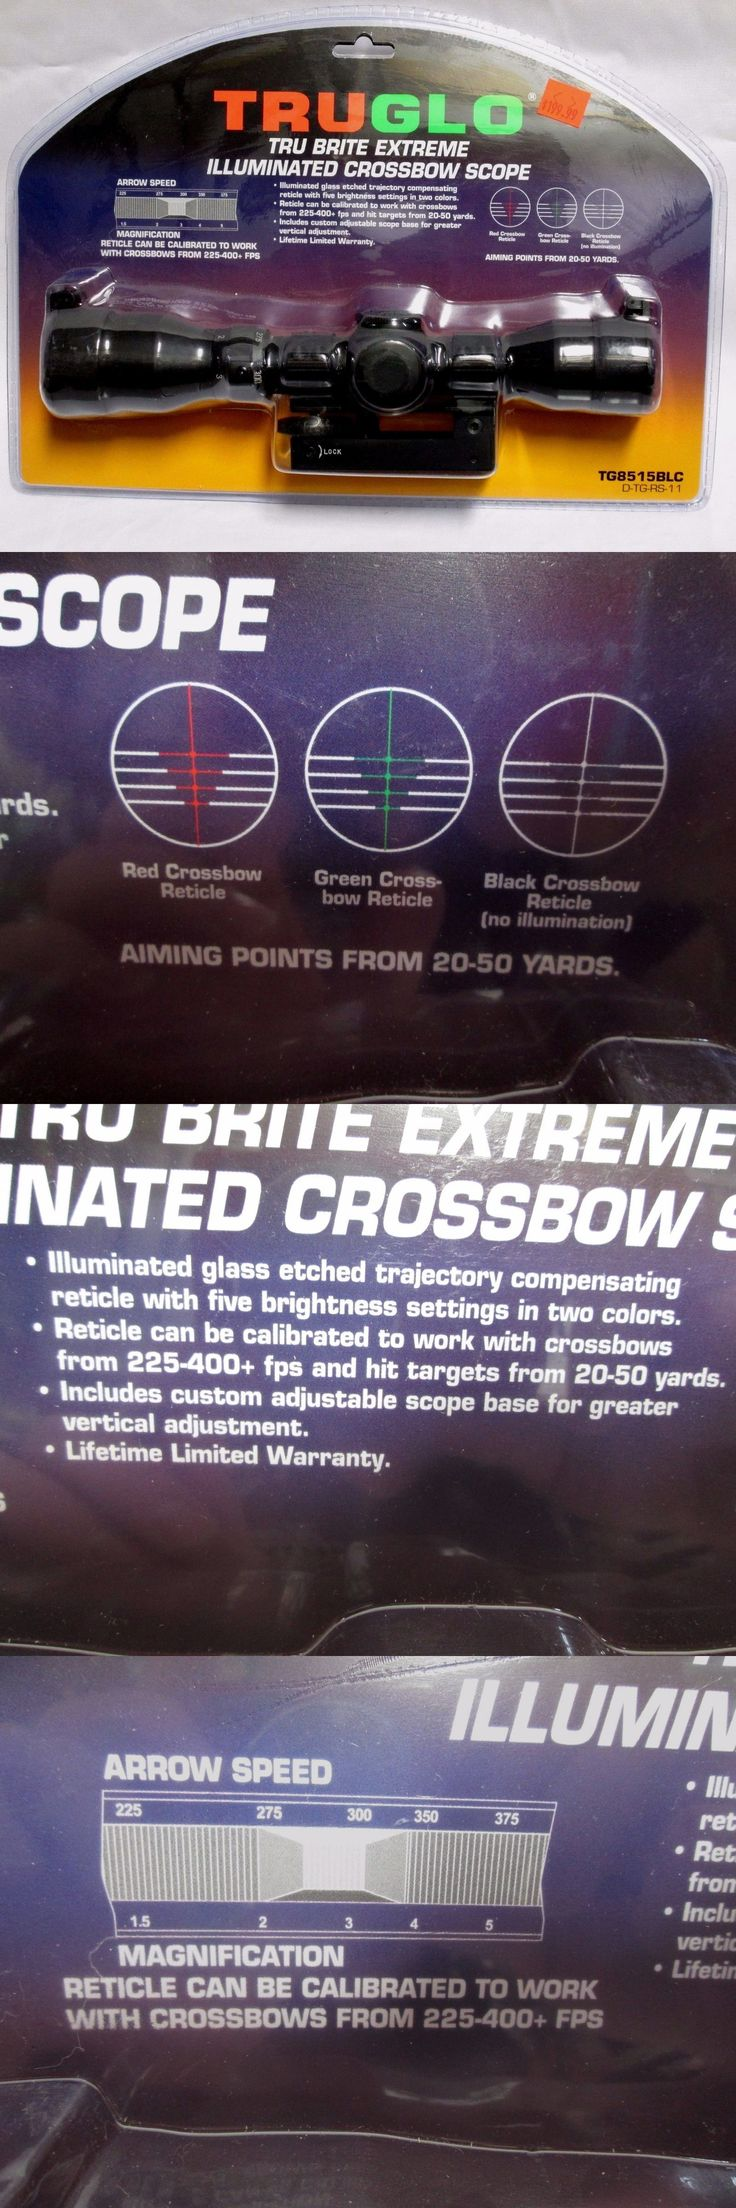 Other Hunting Scopes and Optics 7307: Truglo Tru Brite Extreme Illuminated Crossbow Hunting Scope Tg8515blc -> BUY IT NOW ONLY: $111.49 on eBay!